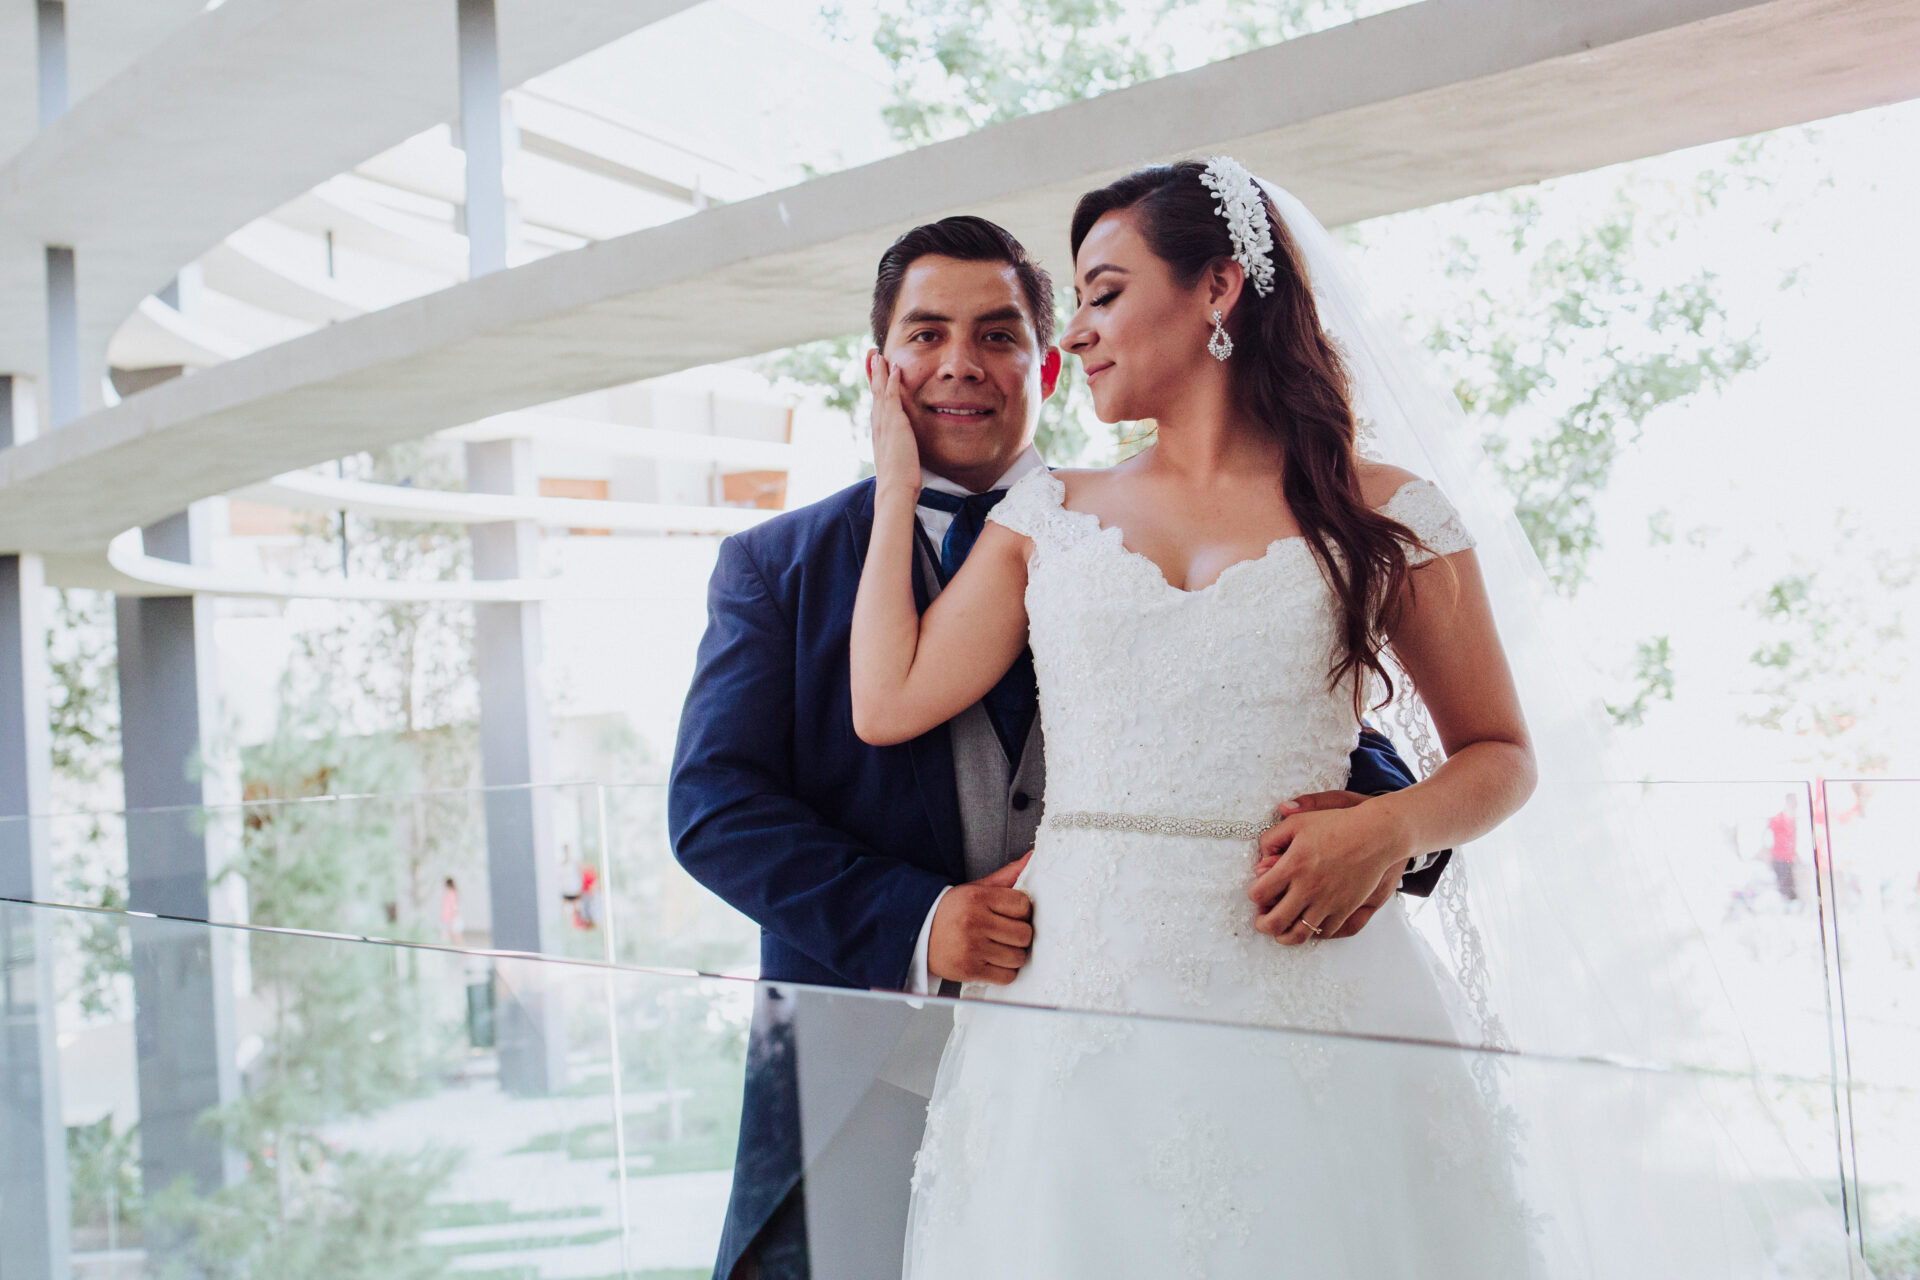 javier_noriega_fotografo_bodas_torreon_coahuila_zacatecas_wedding_photographer23a